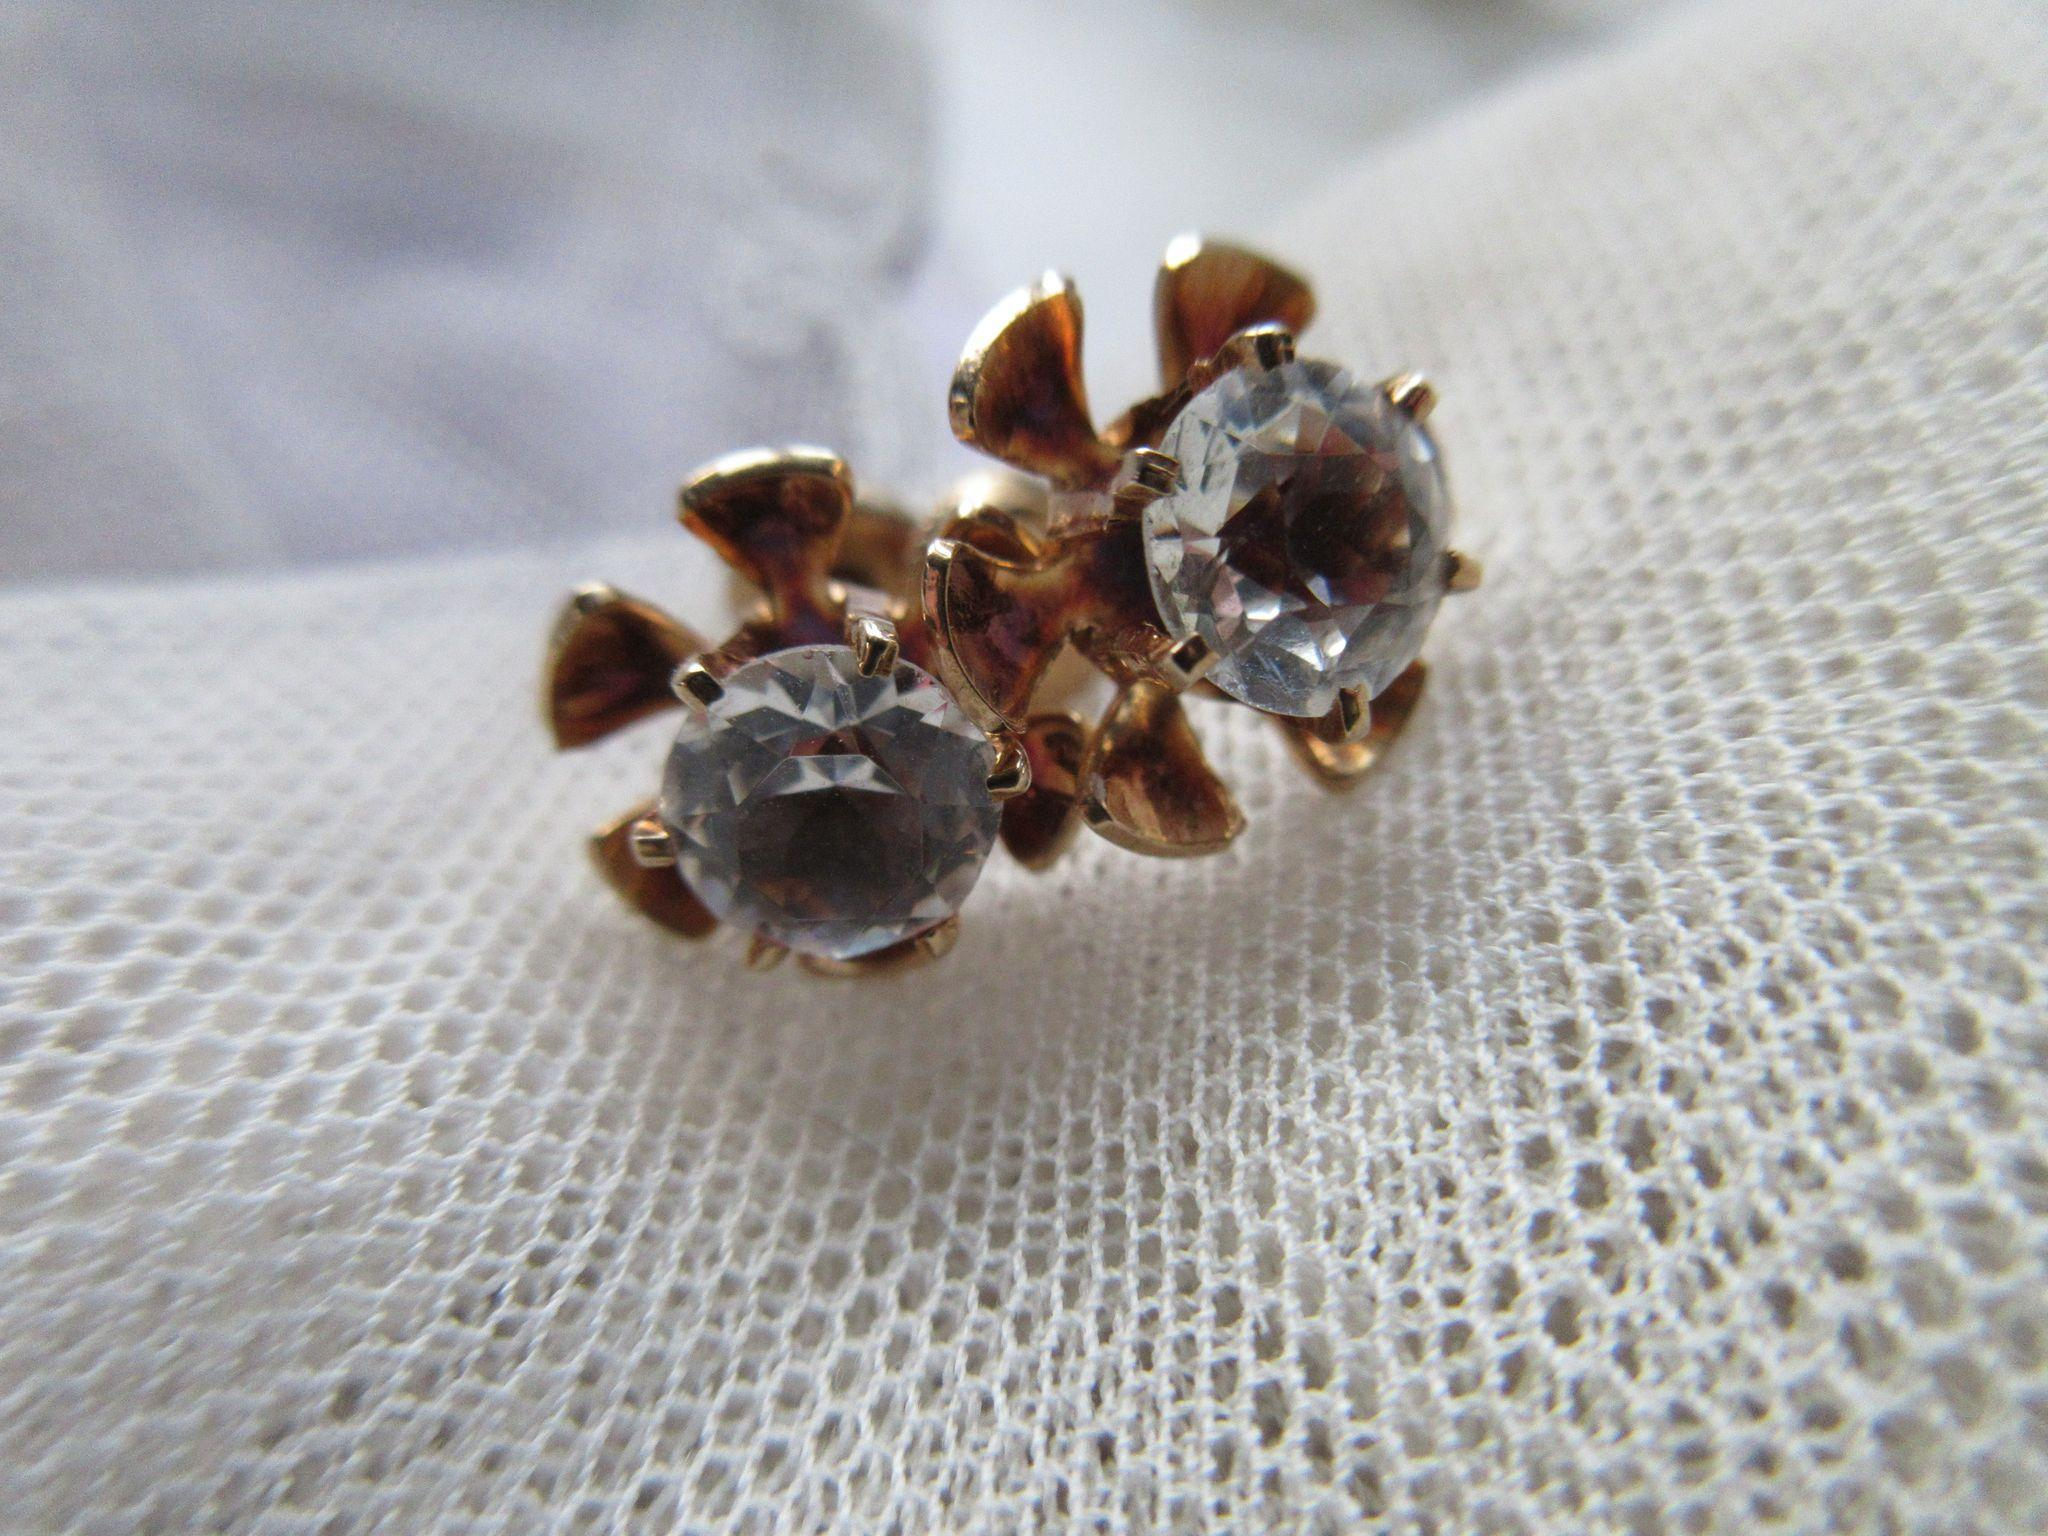 Antique 10K Paste Pierced Earrings, Bridal Jewelry, Heirloom Estate Jewelry